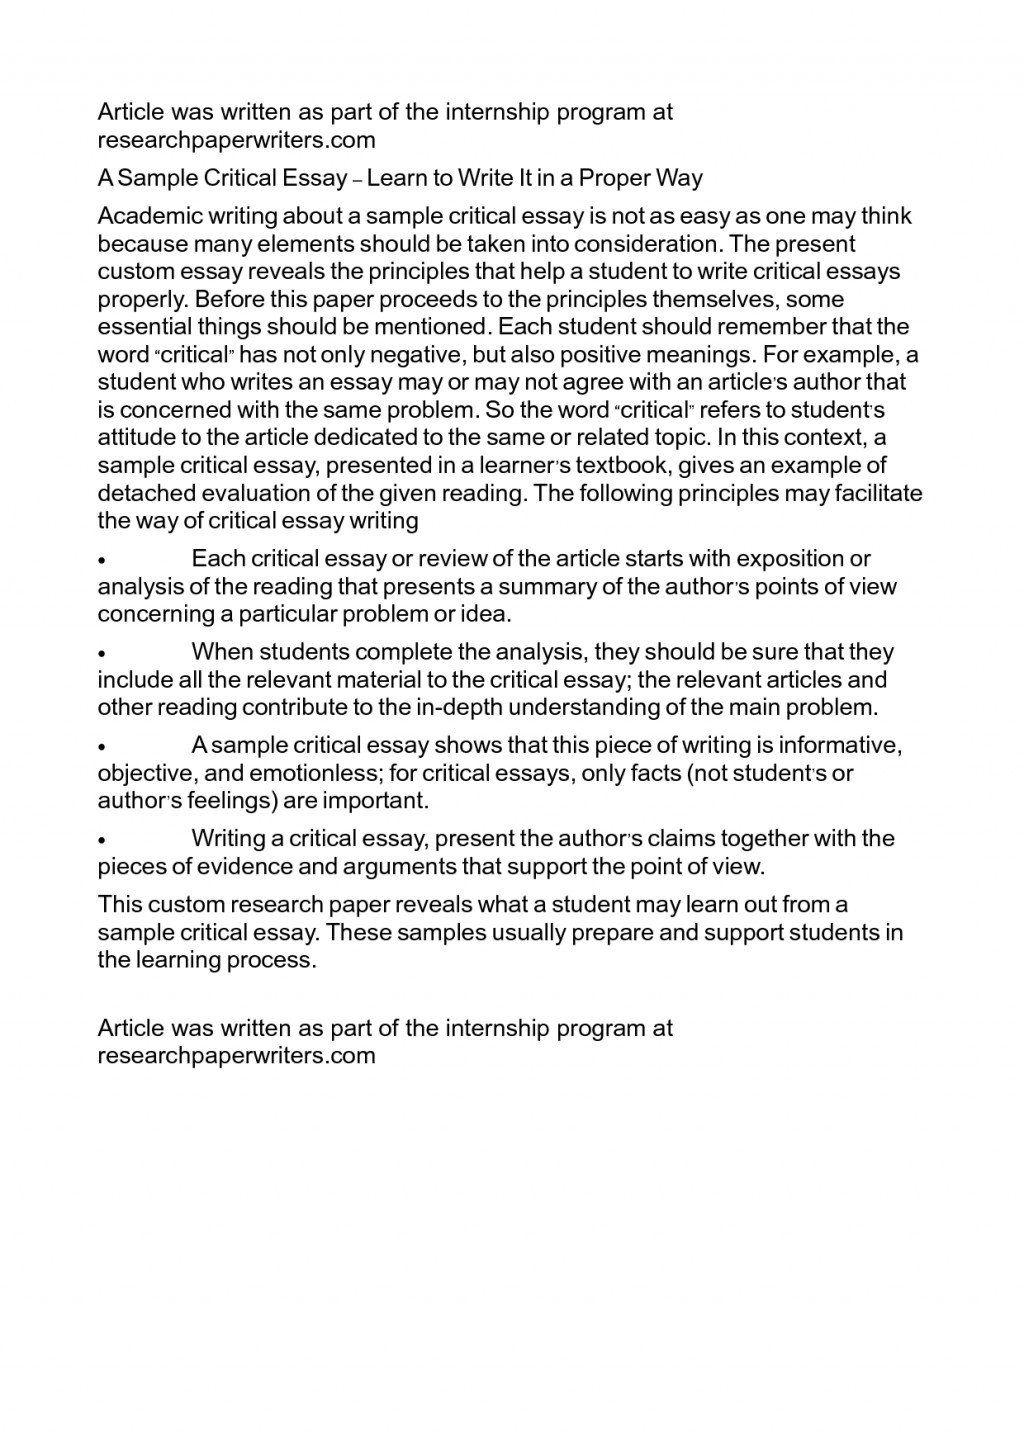 006 Essay Example How To Write Proper Frightening A Good Argumentative Outline Narrative For College Large